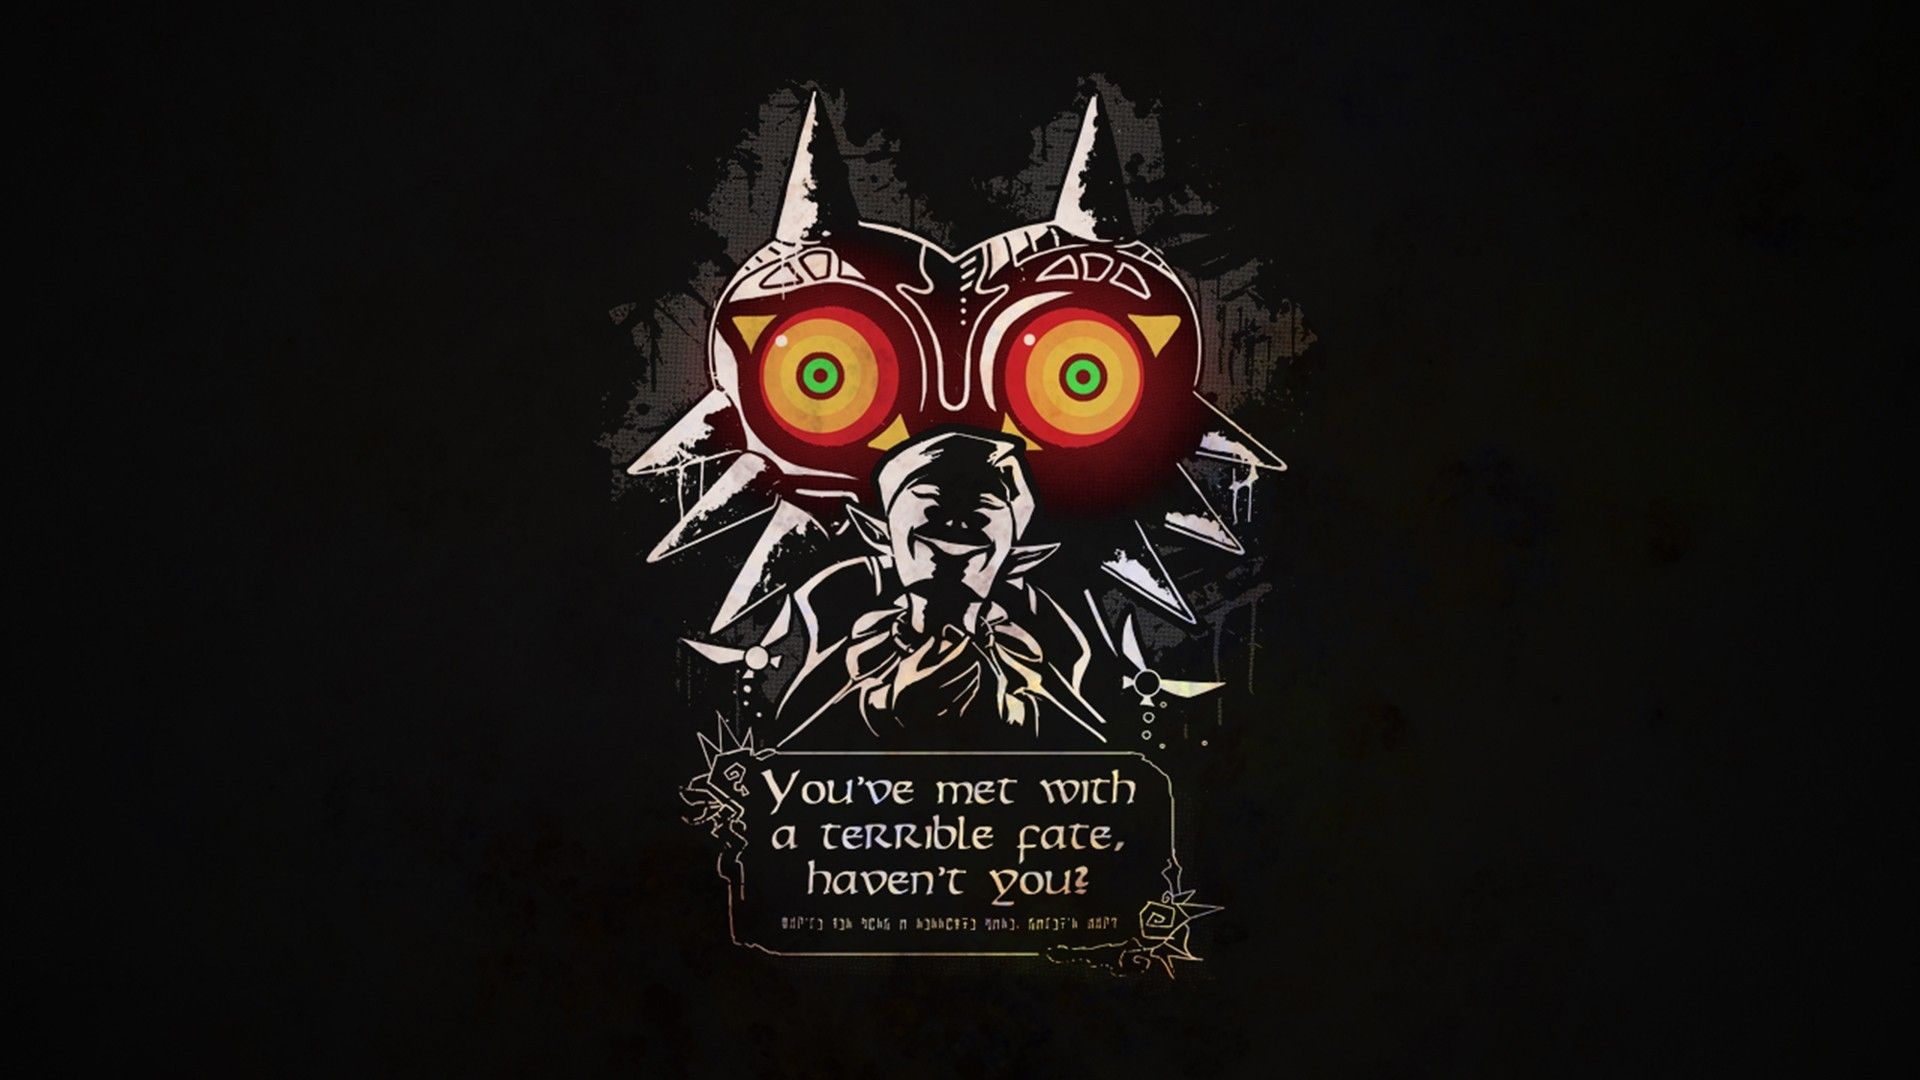 Free Legend Of Zelda Wallpaper Images Majoras Mask Legend Of